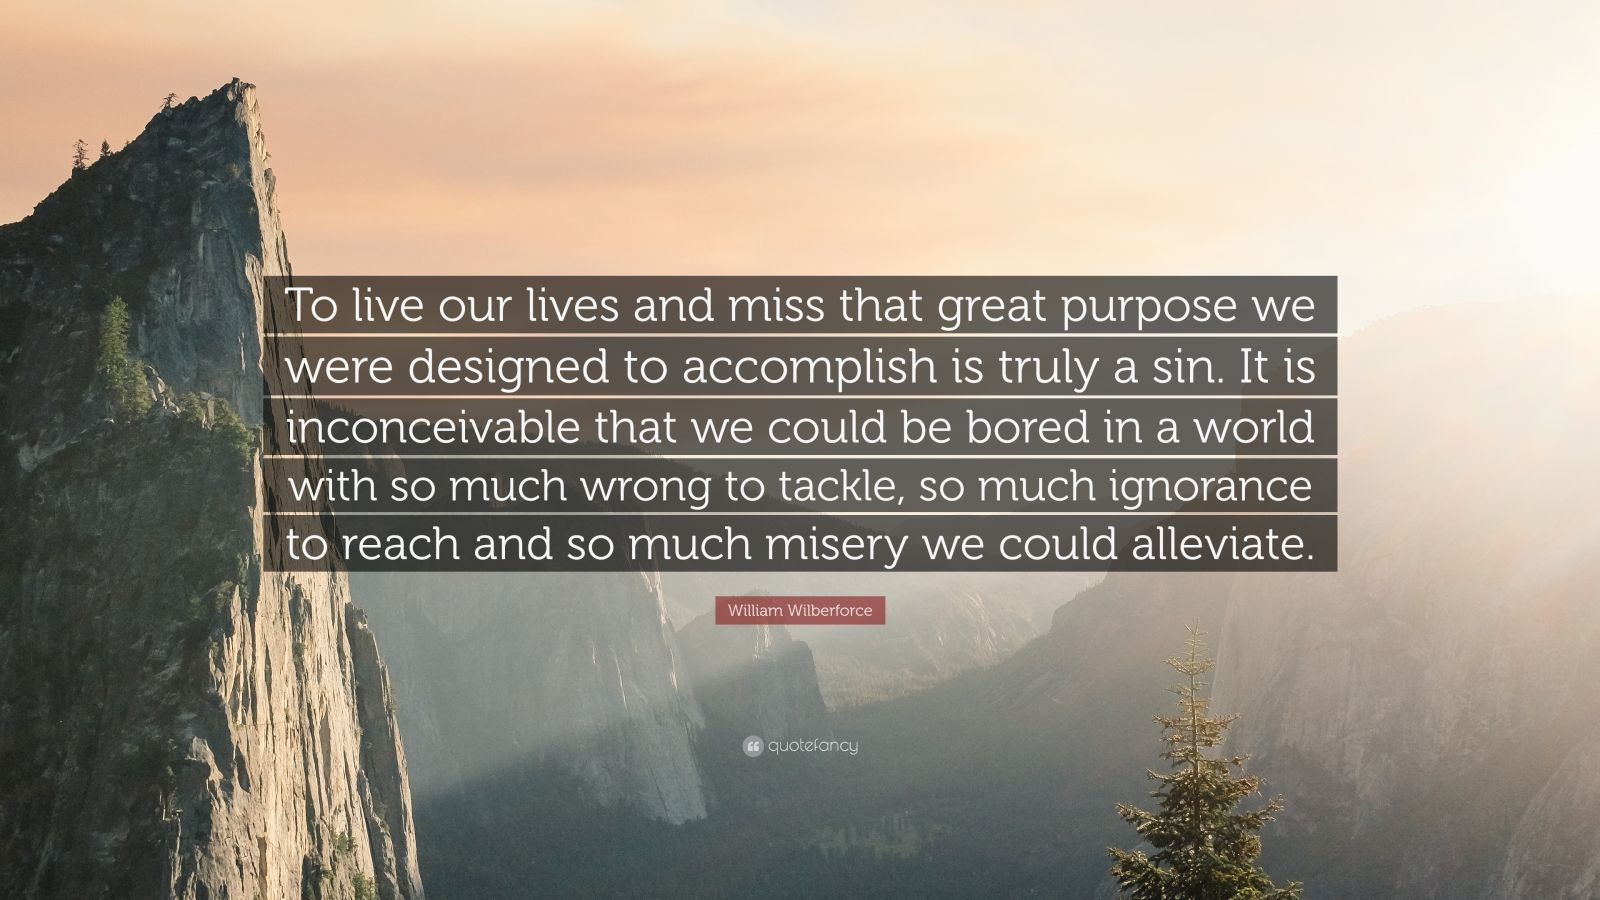 "William Wilberforce Quote: ""To live our lives and miss that great purpose we were designed to accomplish is truly a sin. It is inconceivable that we could be bored in a world with so much wrong to tackle, so much ignorance to reach and so much misery we could alleviate."""